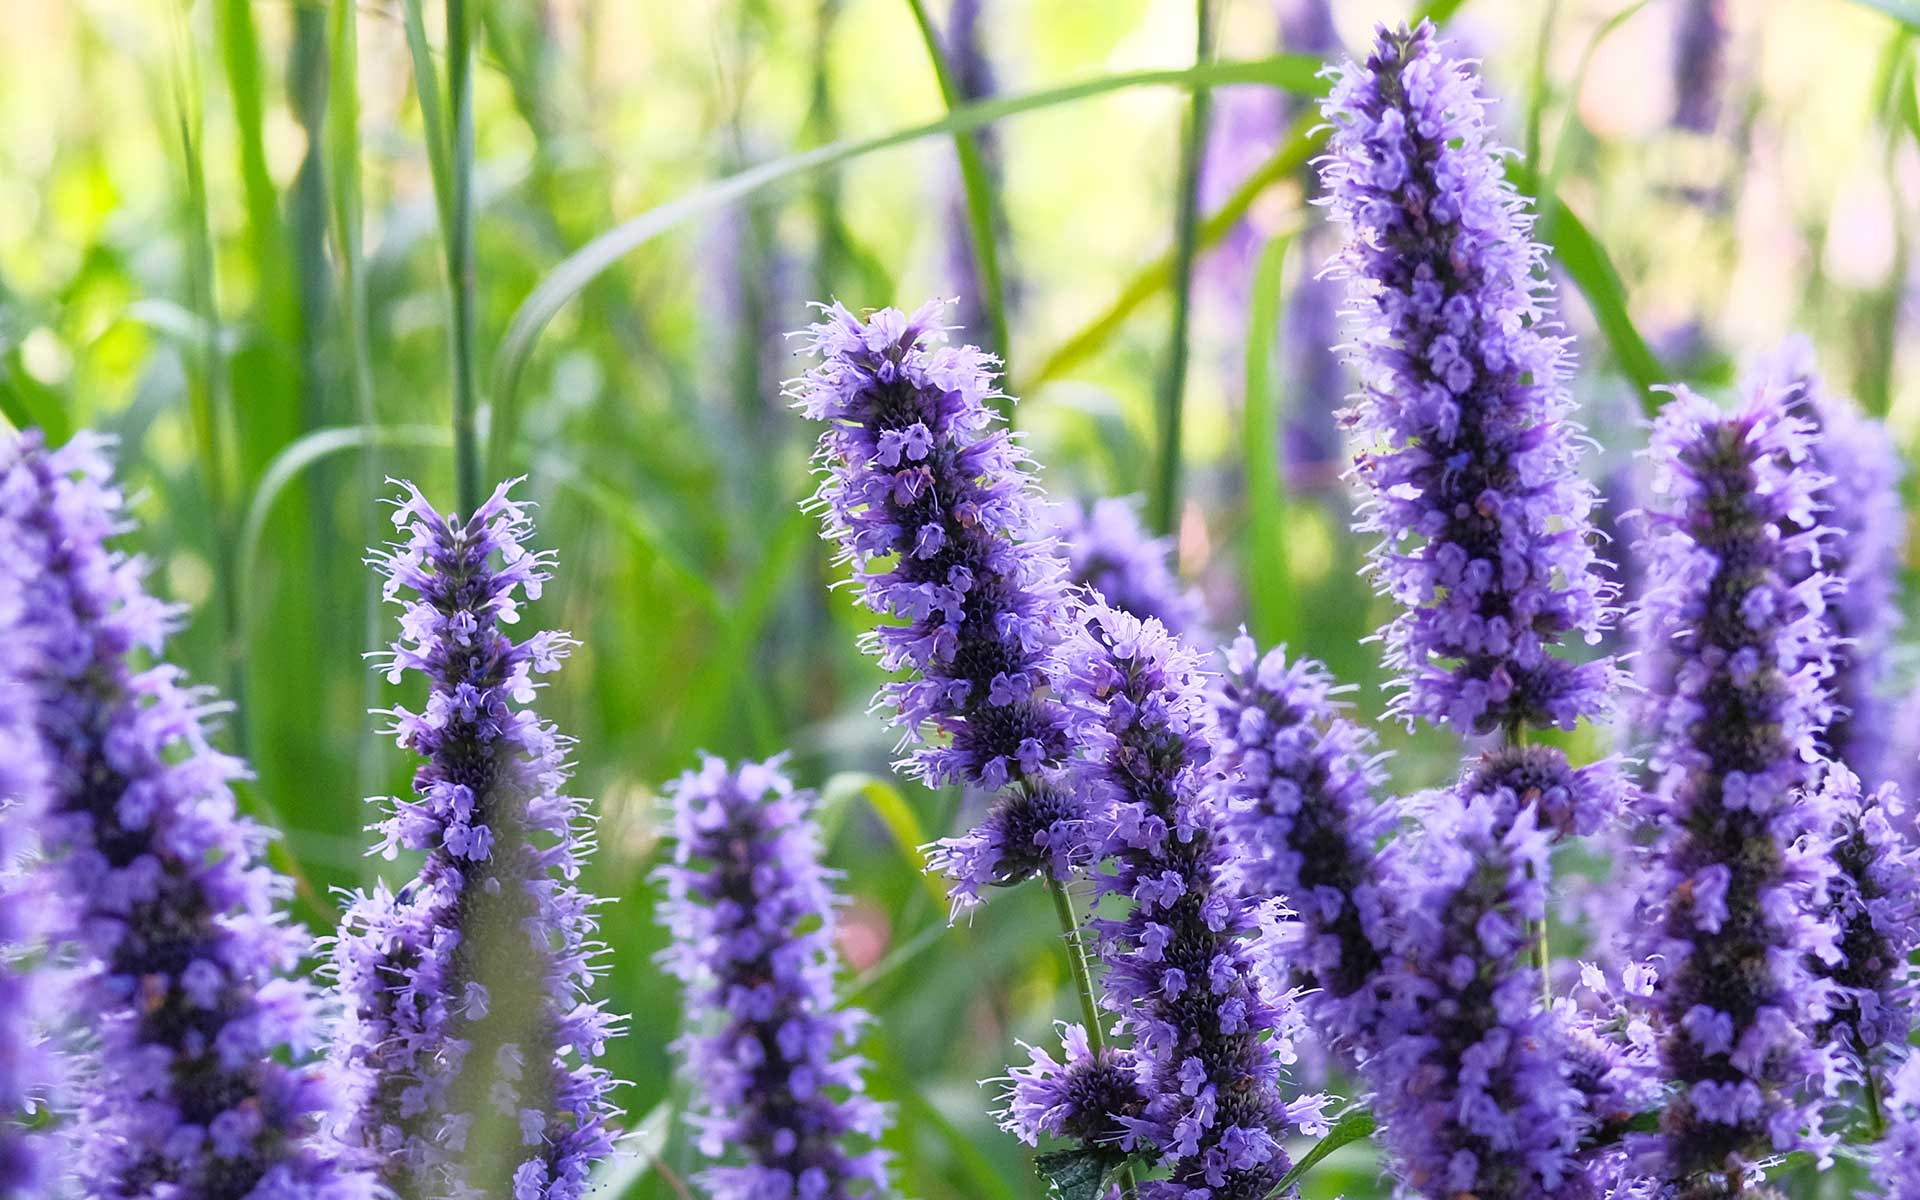 Hyssop Plant - The Sacred Herb